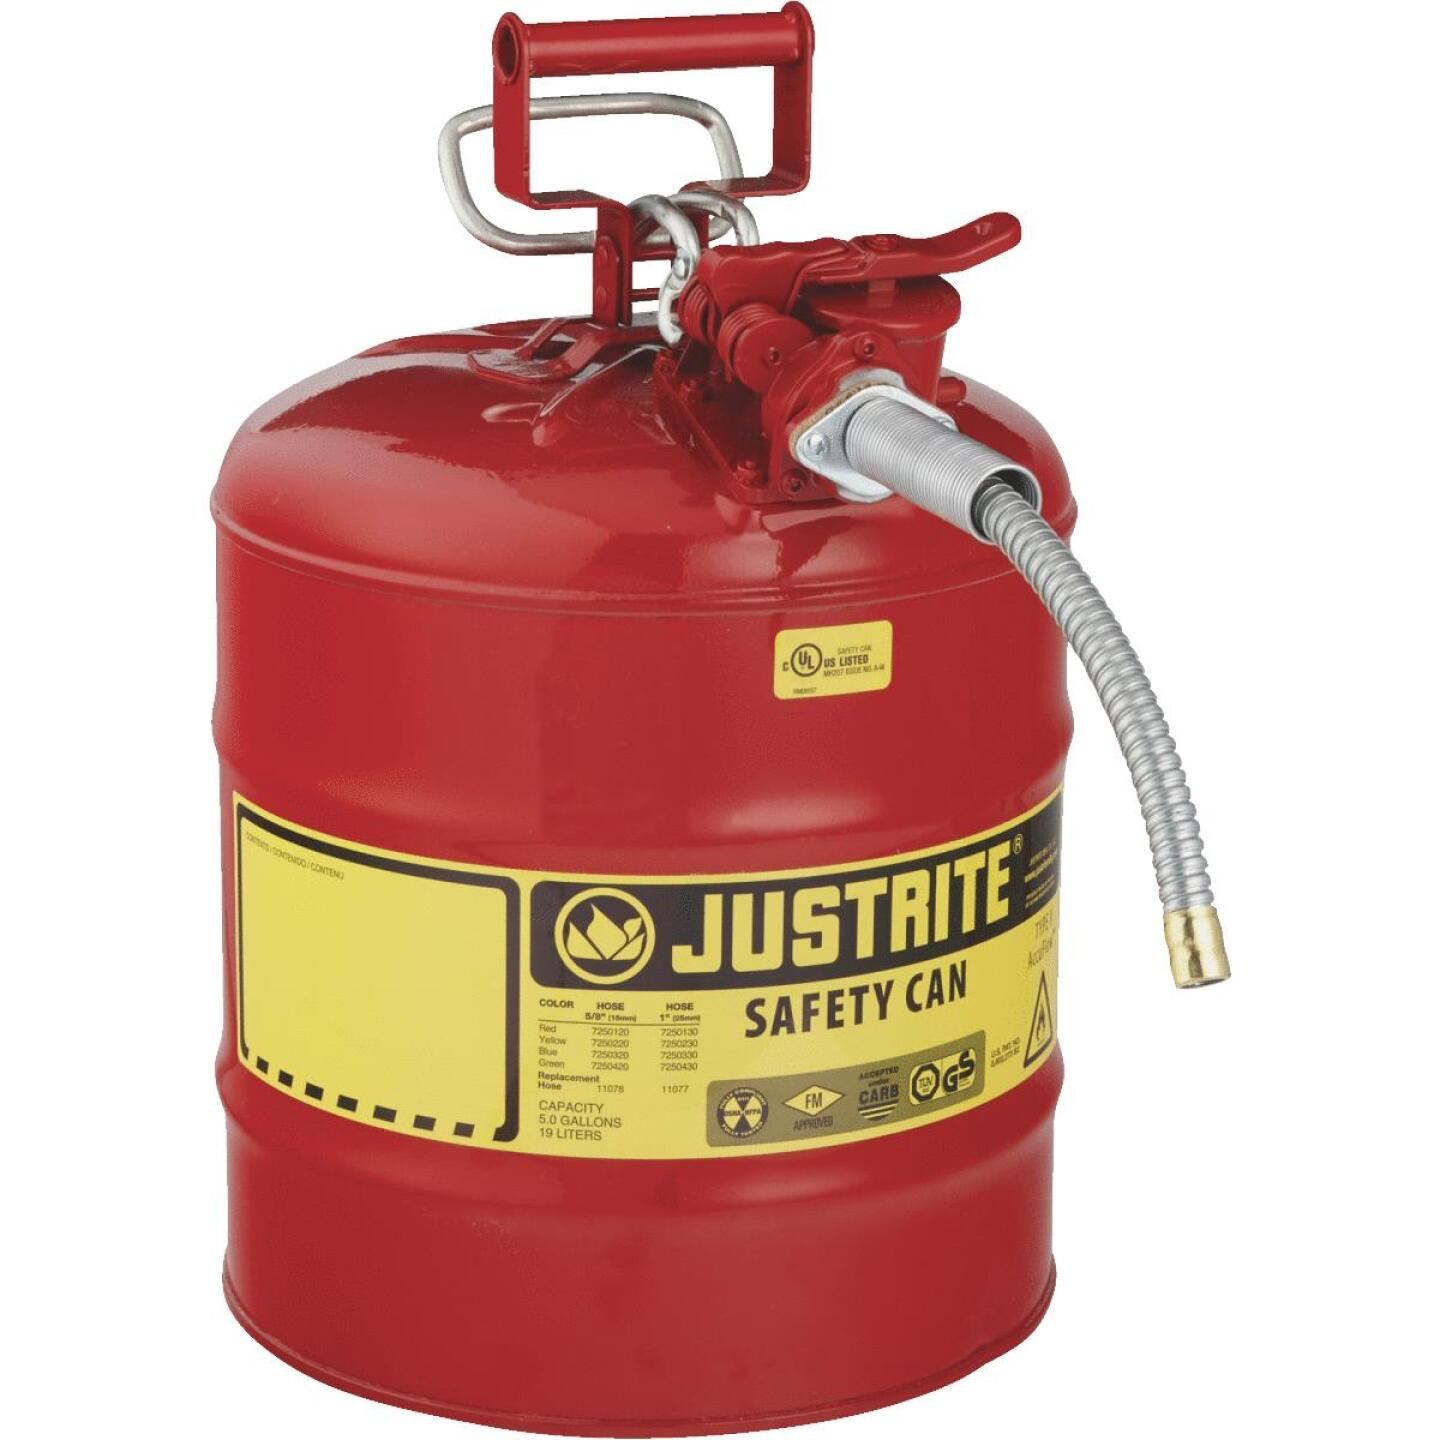 Justrite 5 Gal. Type II Galvanized Steel Safety Fuel Can, Red Image 1